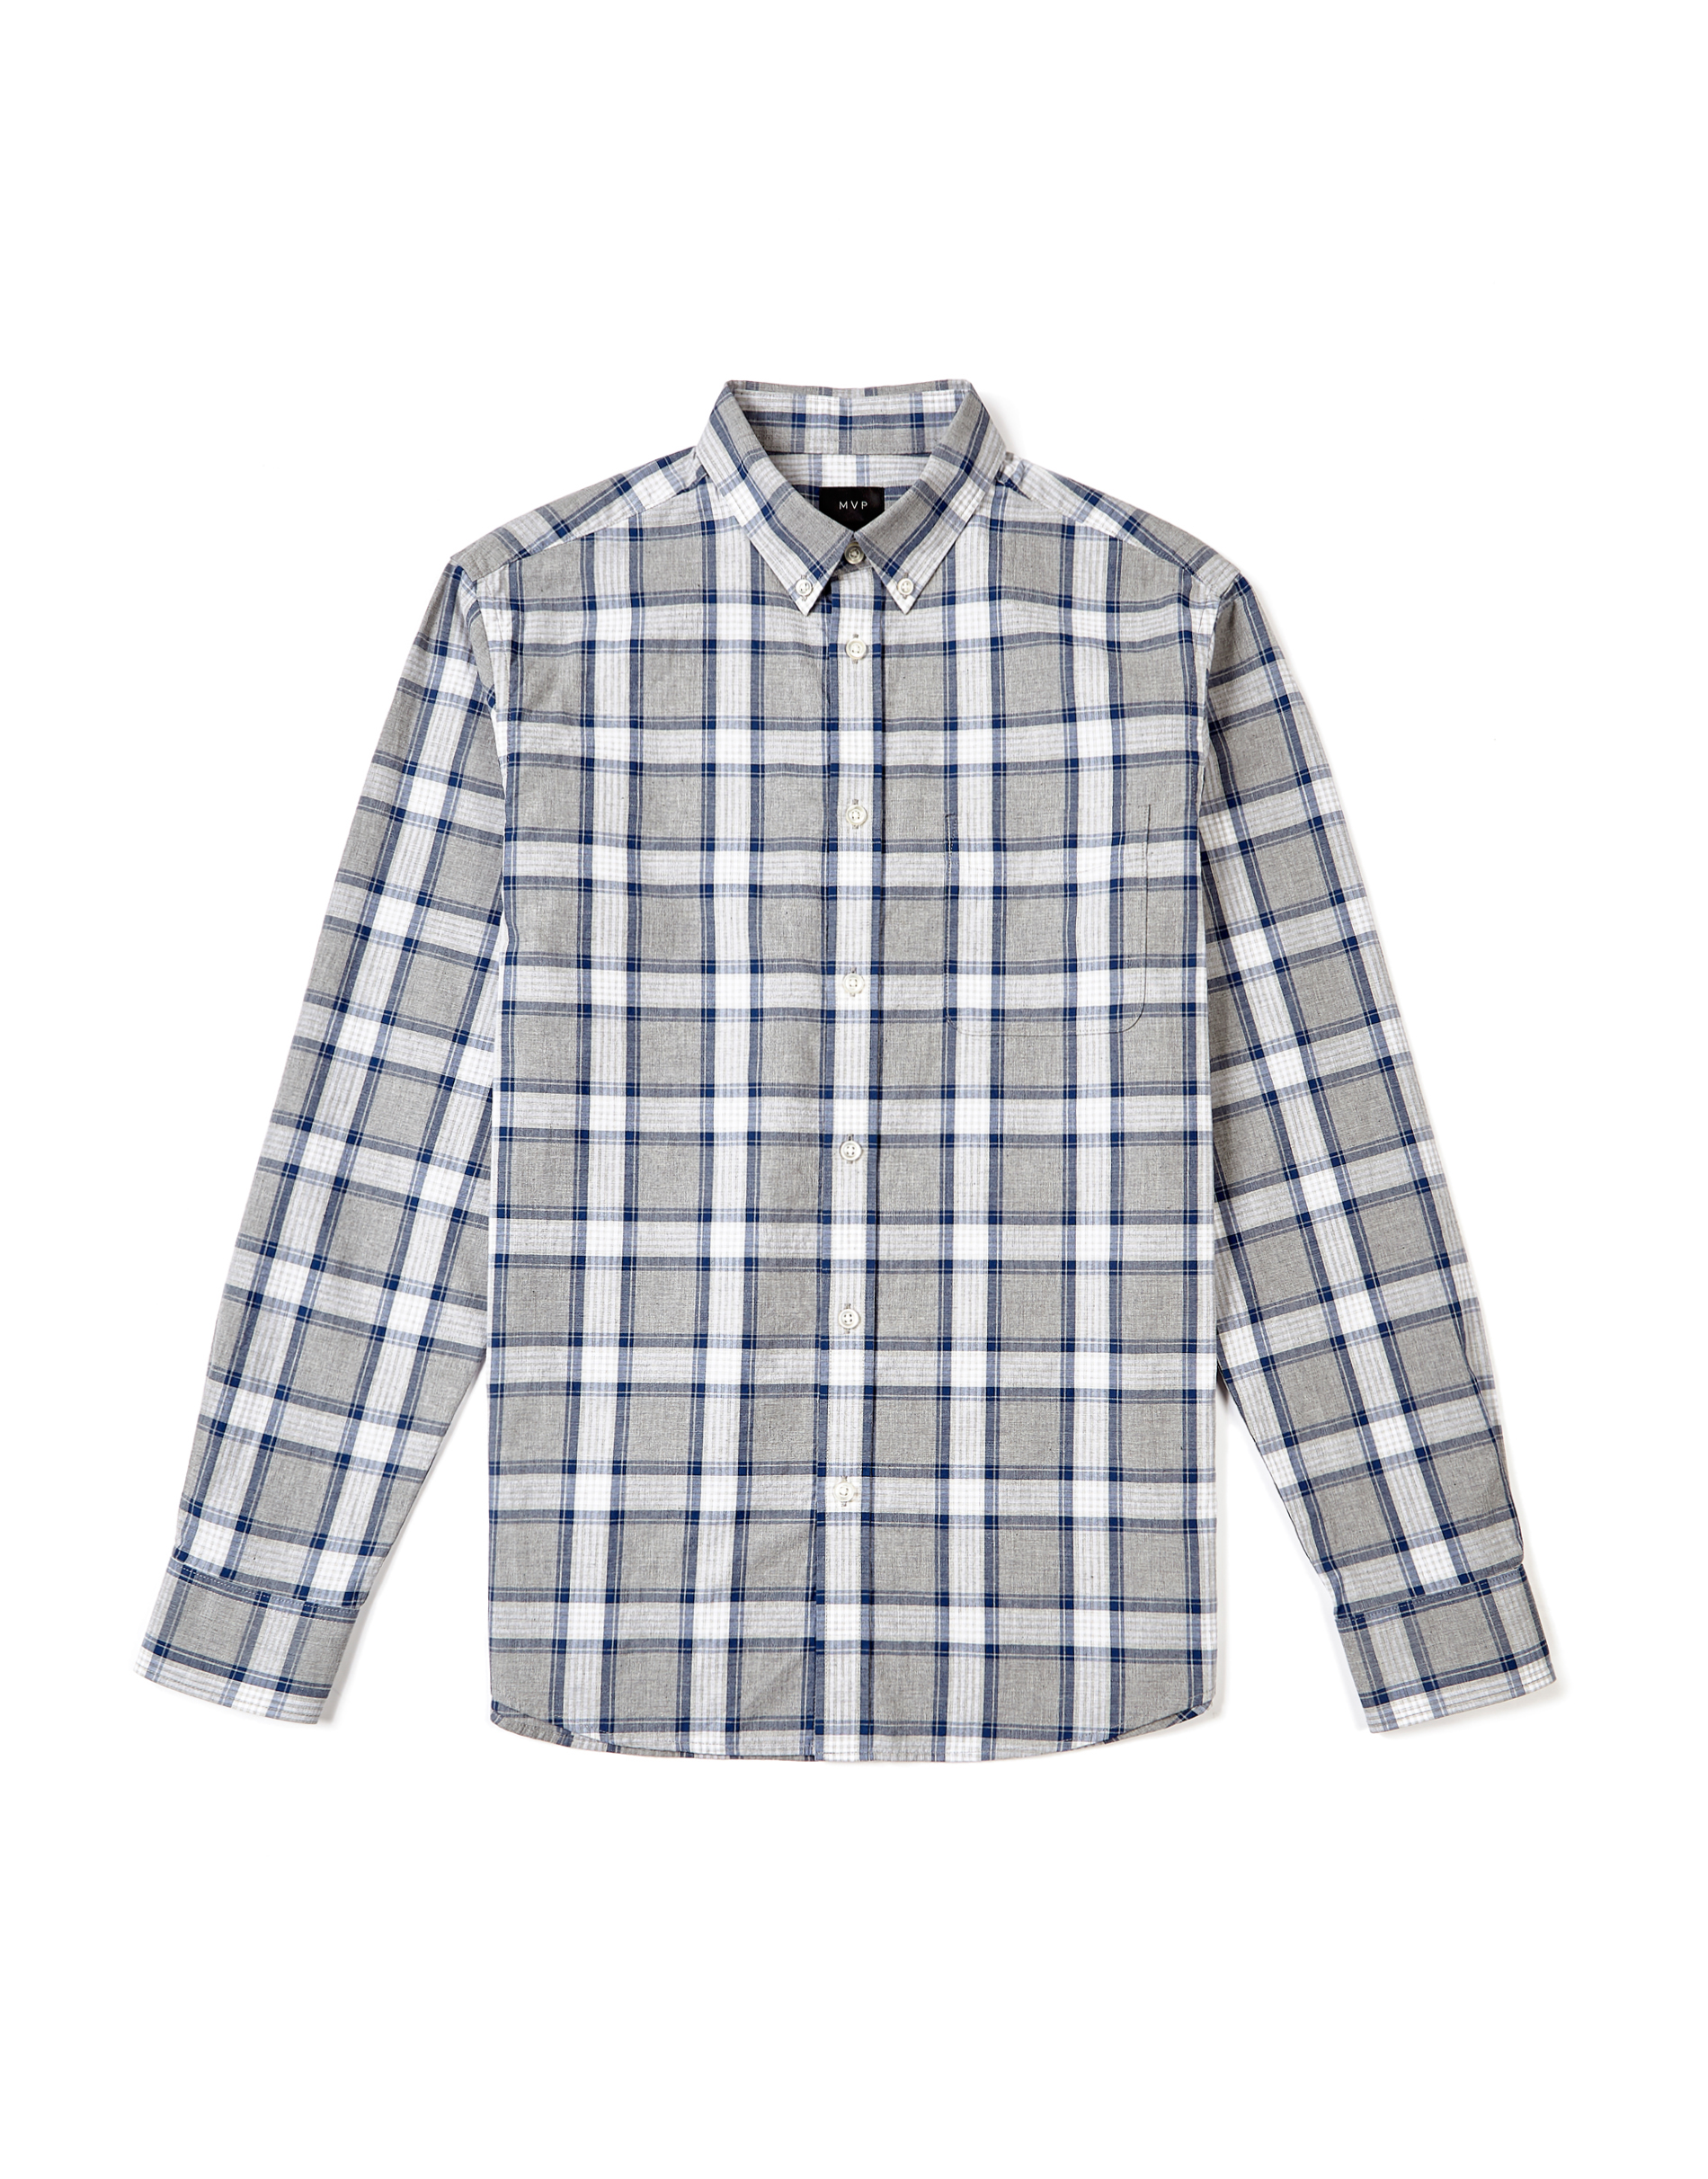 MVP Brierly Poplin Mid Scale Check Shirt - Grey